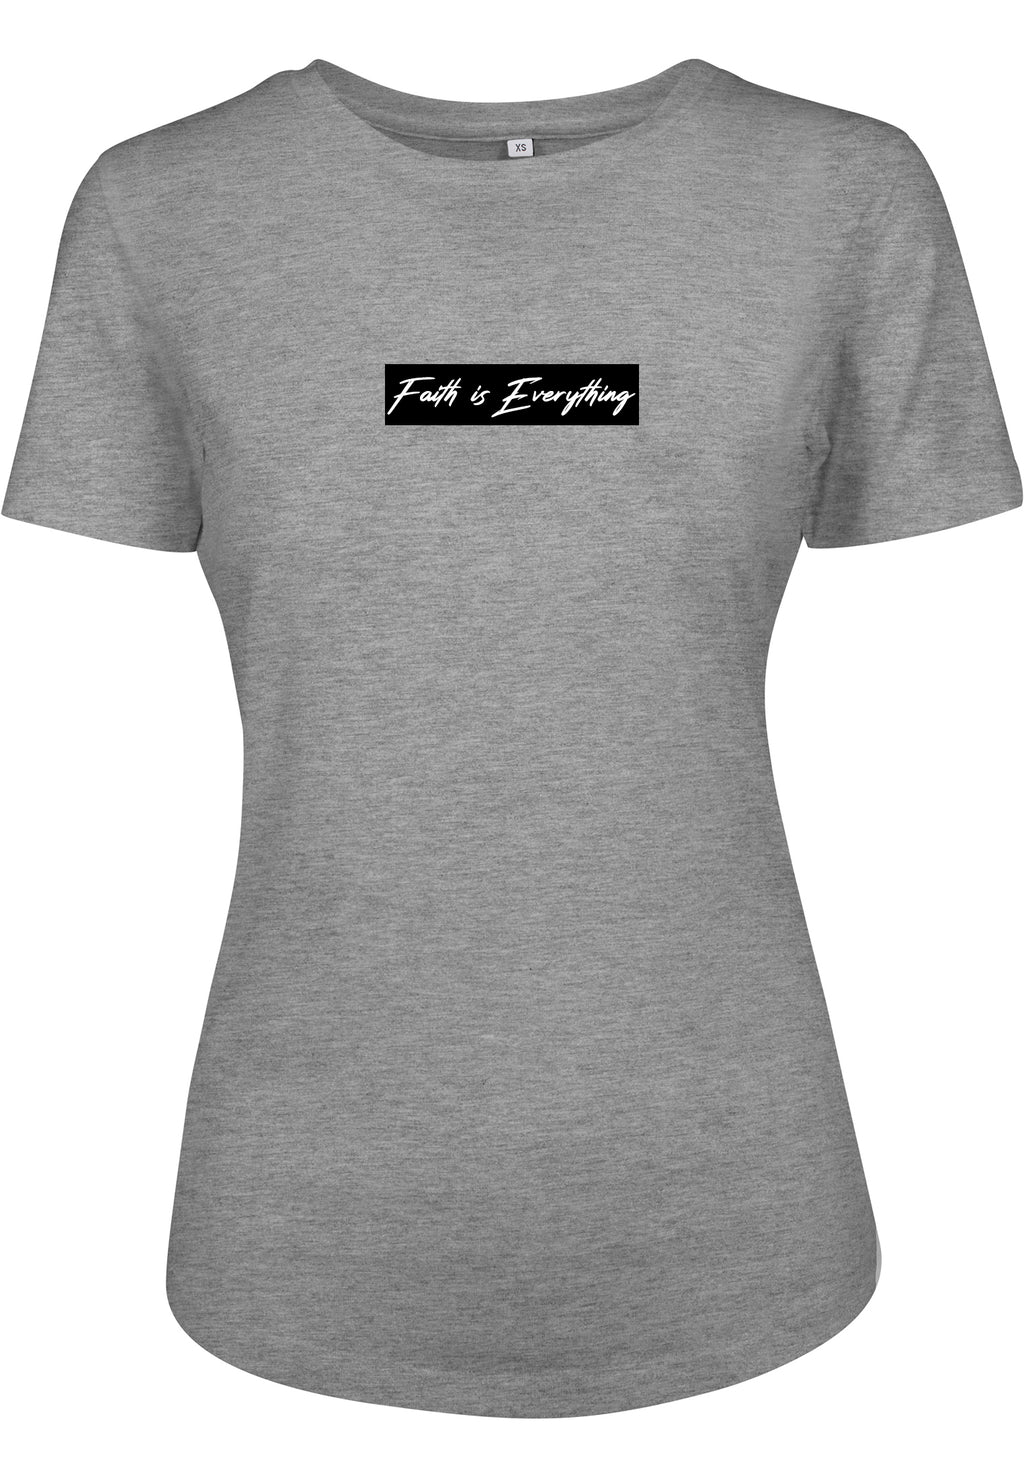 Women's FAITH IS EVERYTHING BLACK FITTED T-SHIRT (H.Grey)